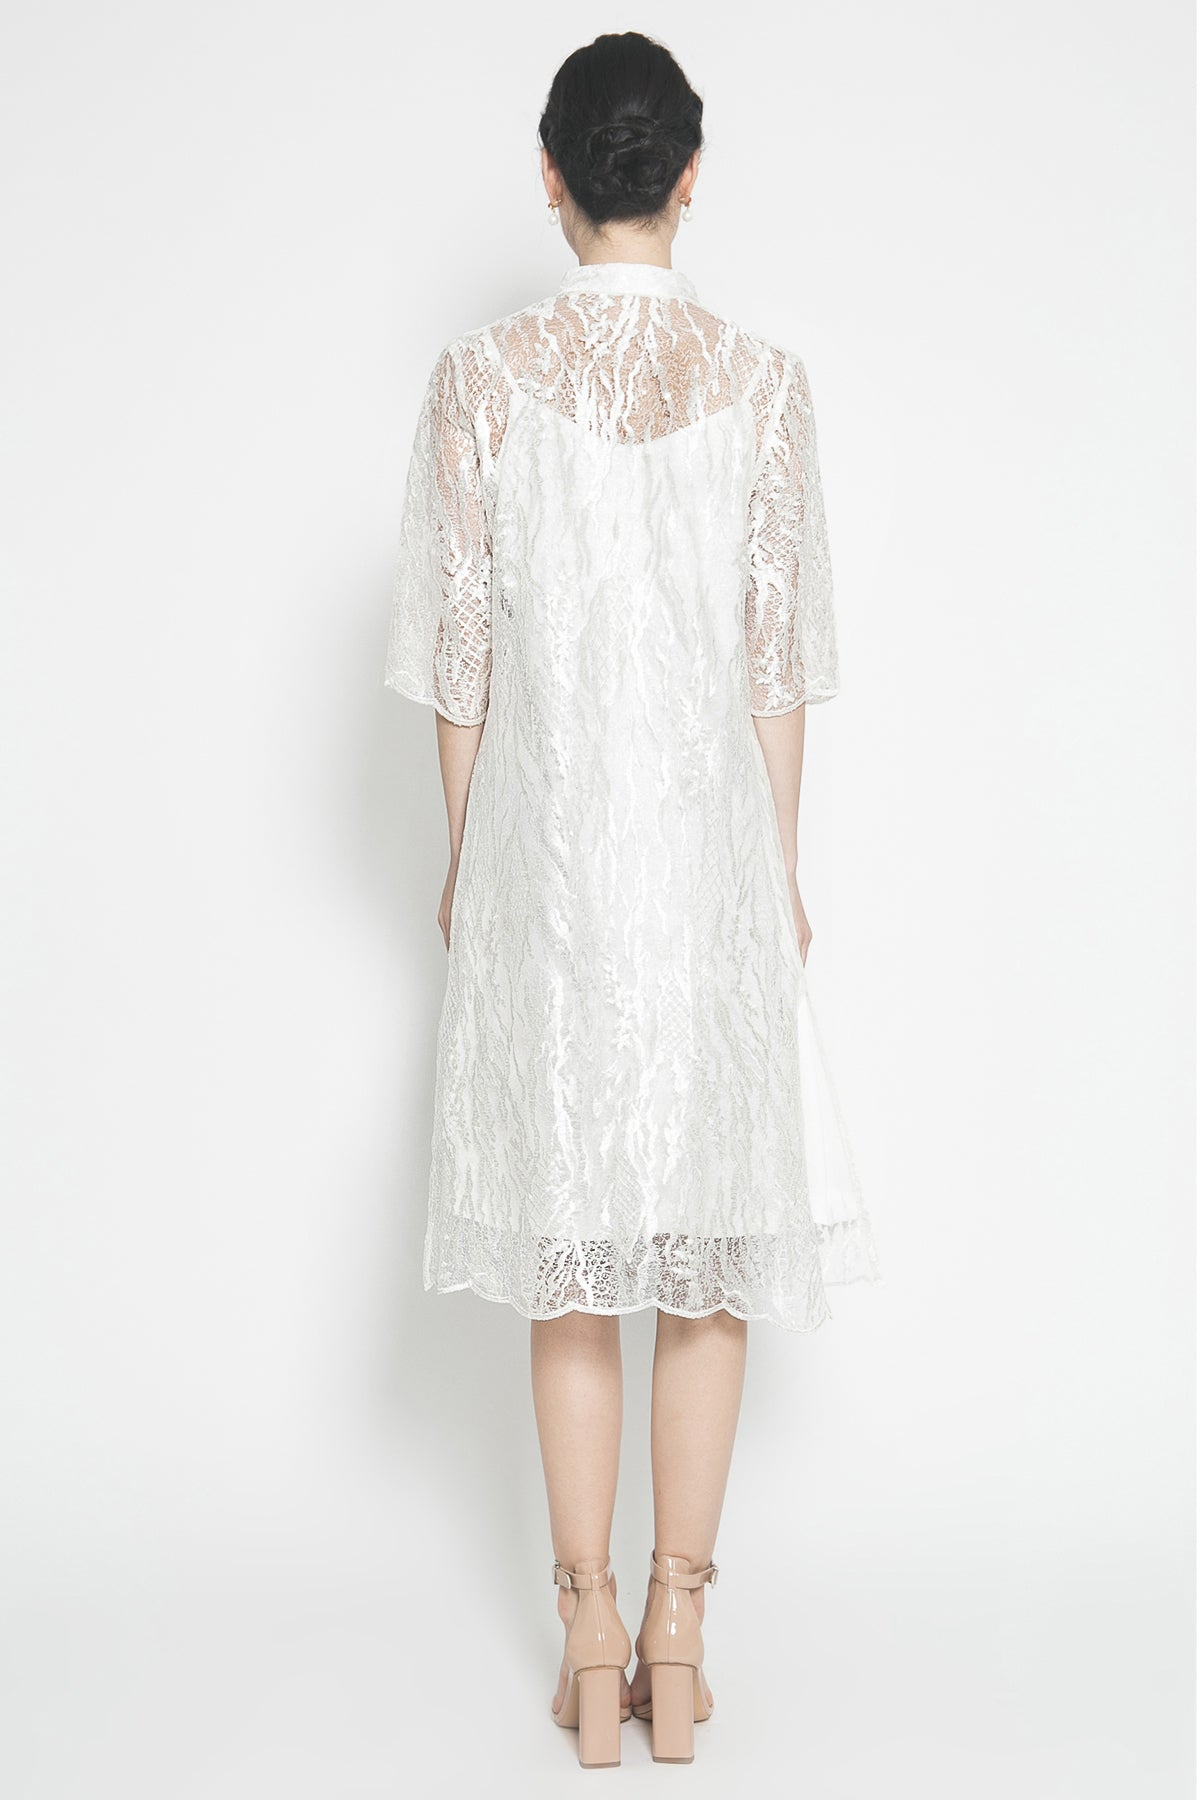 Amelie Dress in White